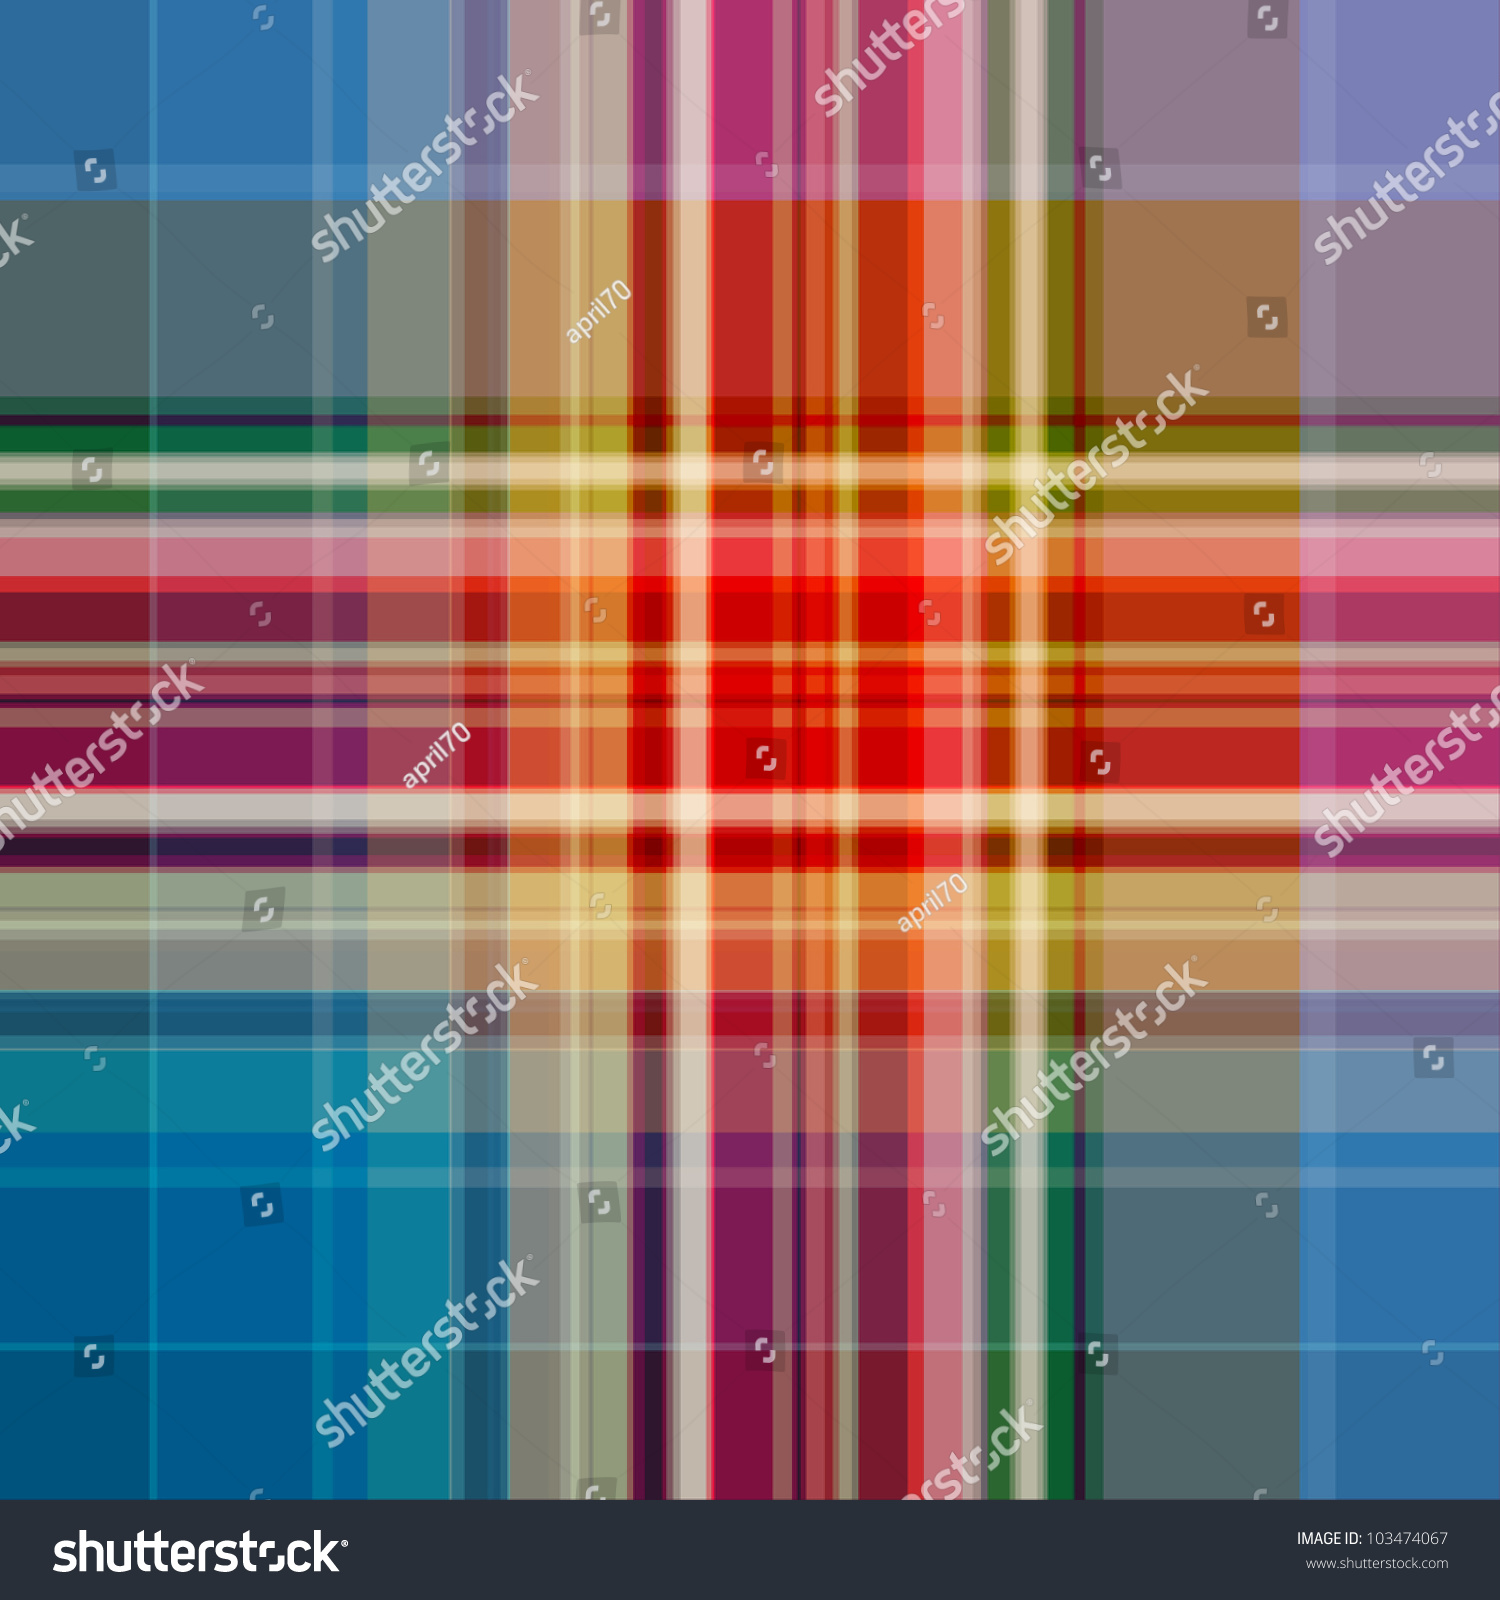 Blue and brown plaid background blue brown green red plaid